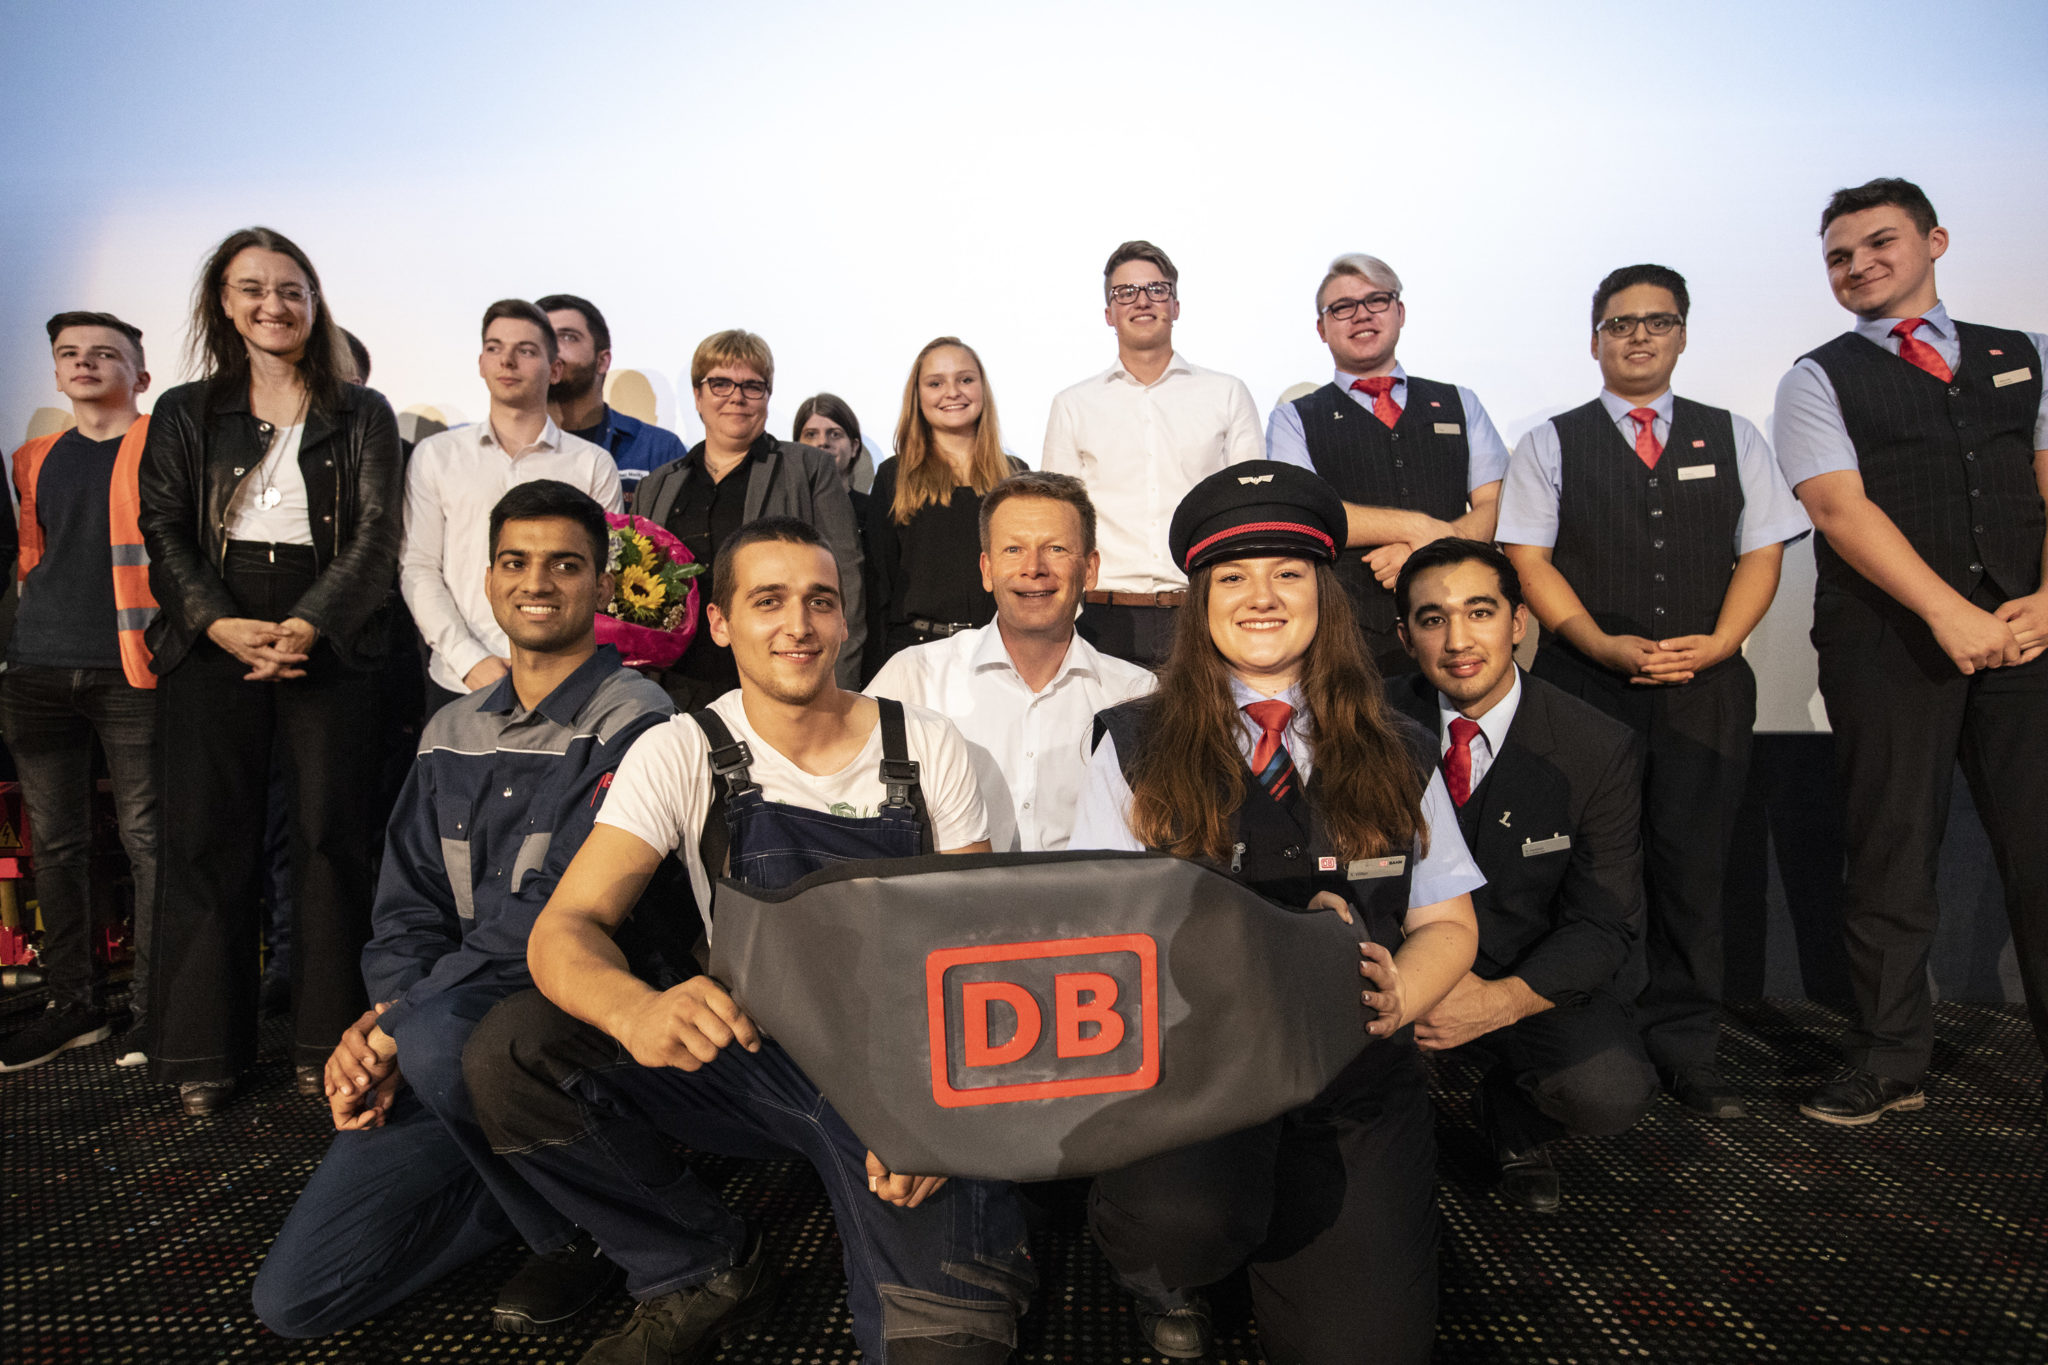 Deutsche Bahn wants to hire 22000 employees in 2019